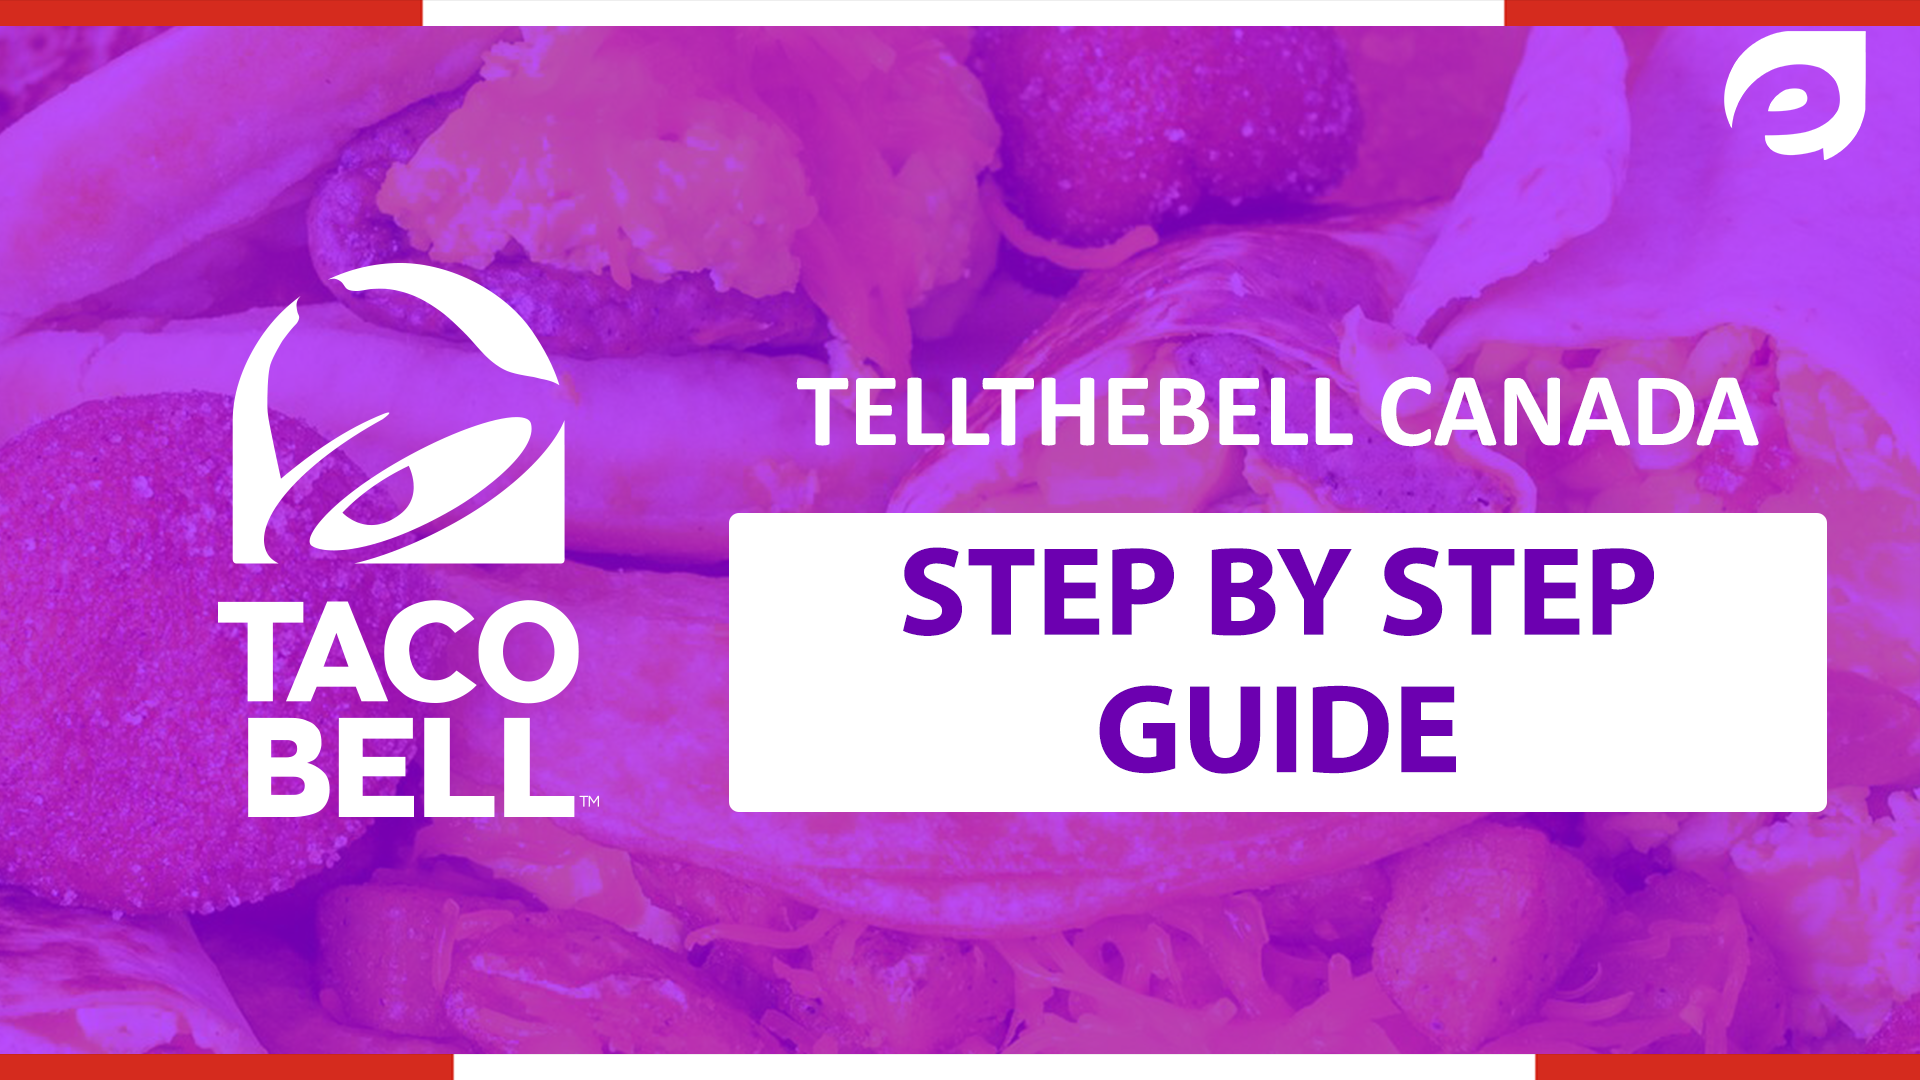 tellthebell ca - Step_by_Step_guide